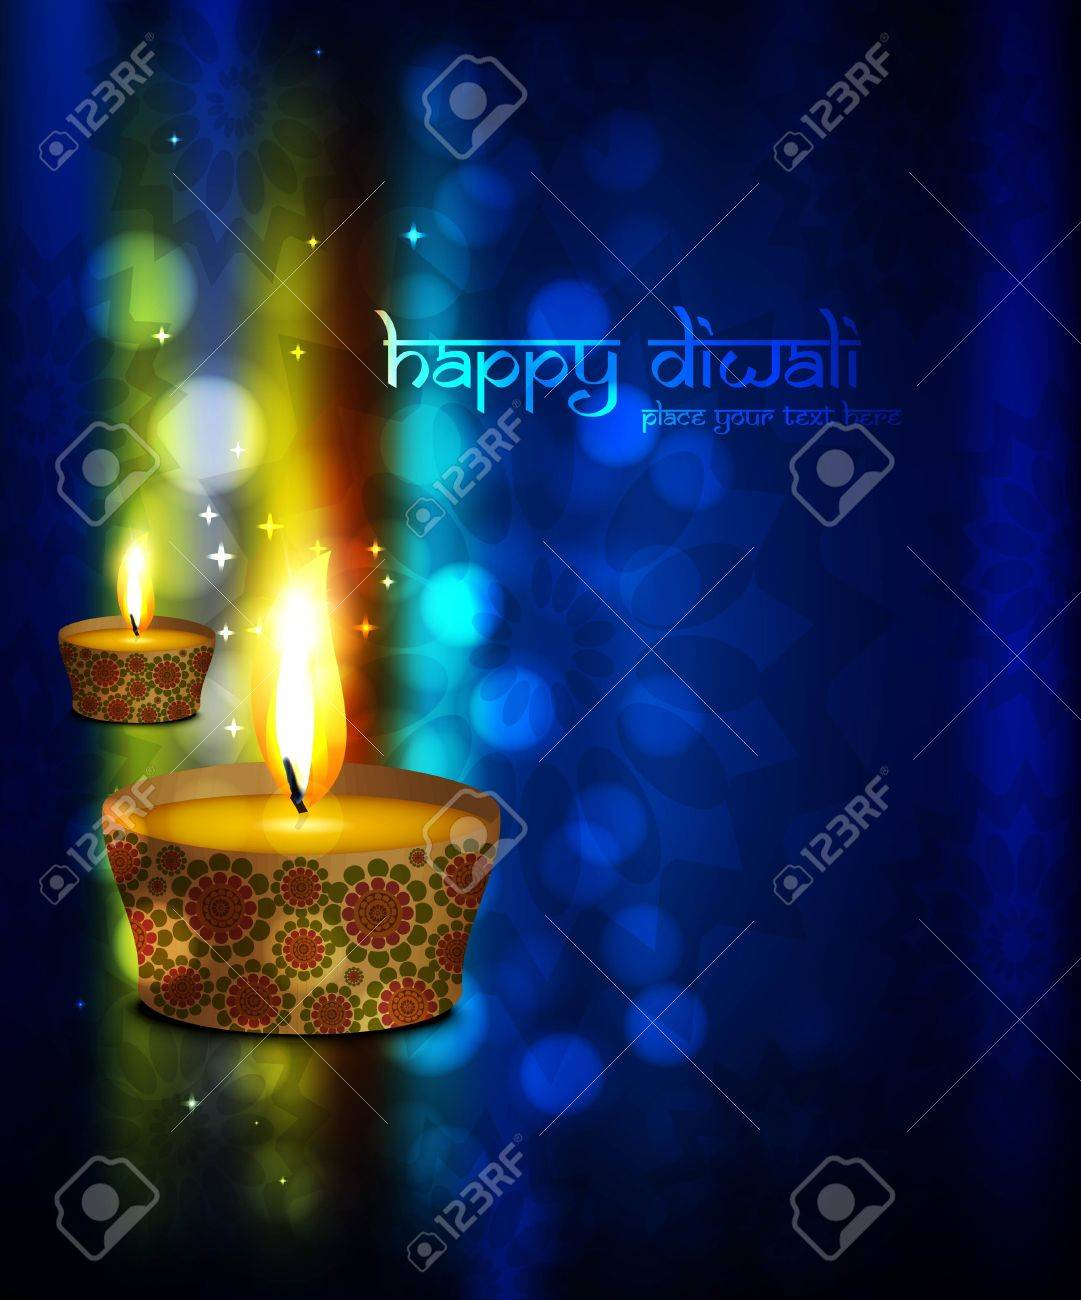 Beautiful Happy Diwali Greeting Card Blue Colorful Vector Background